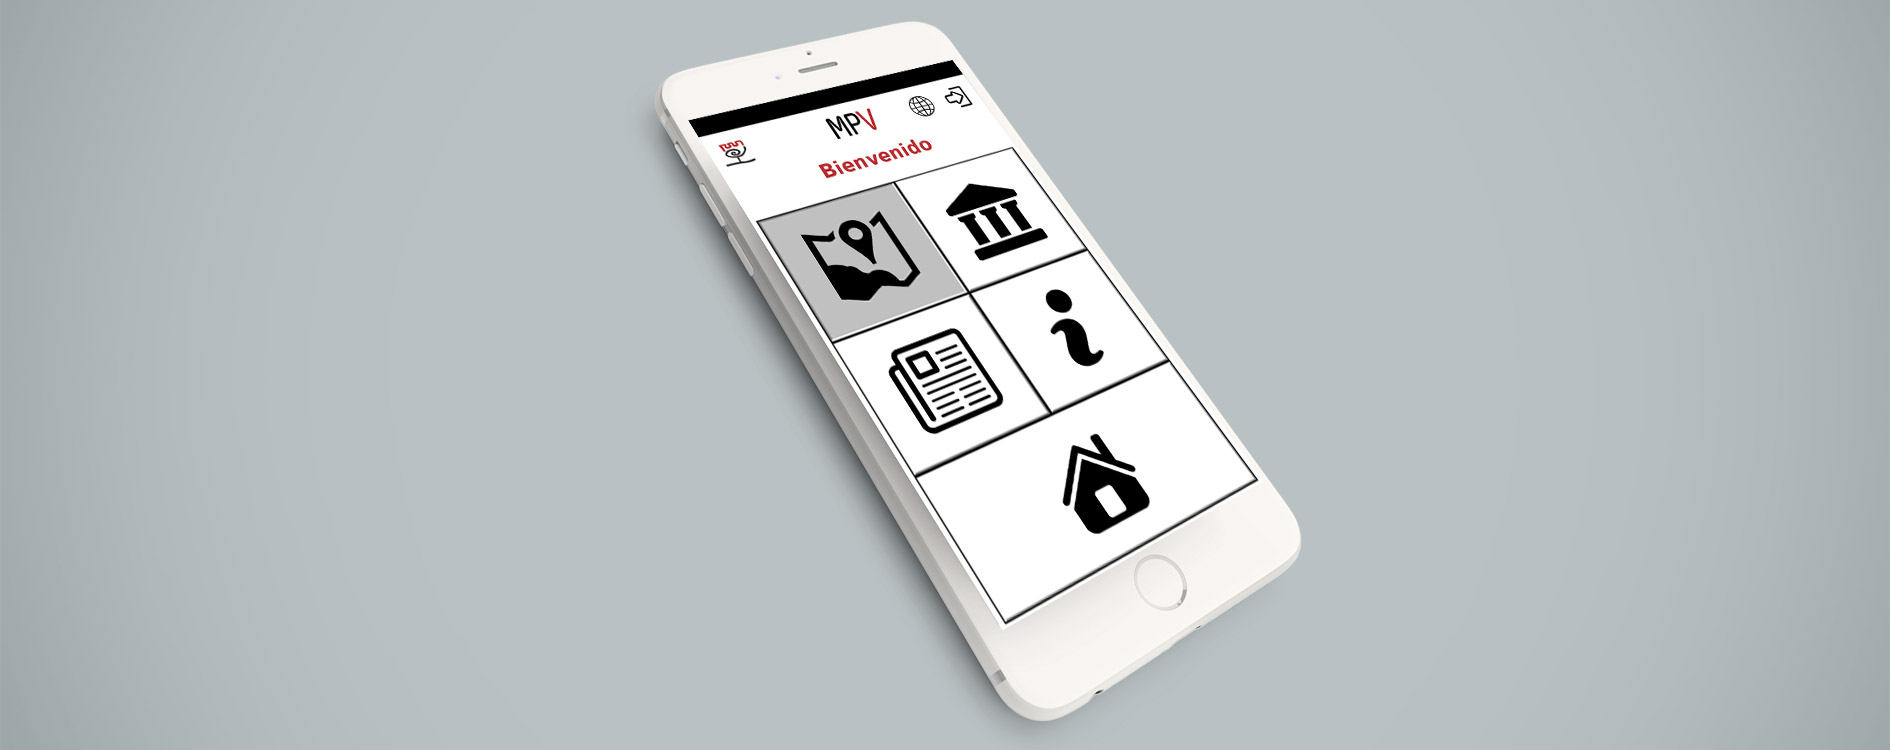 OHVisual - APPS And Mobile - Museo Provincial del Vino de Valladolid